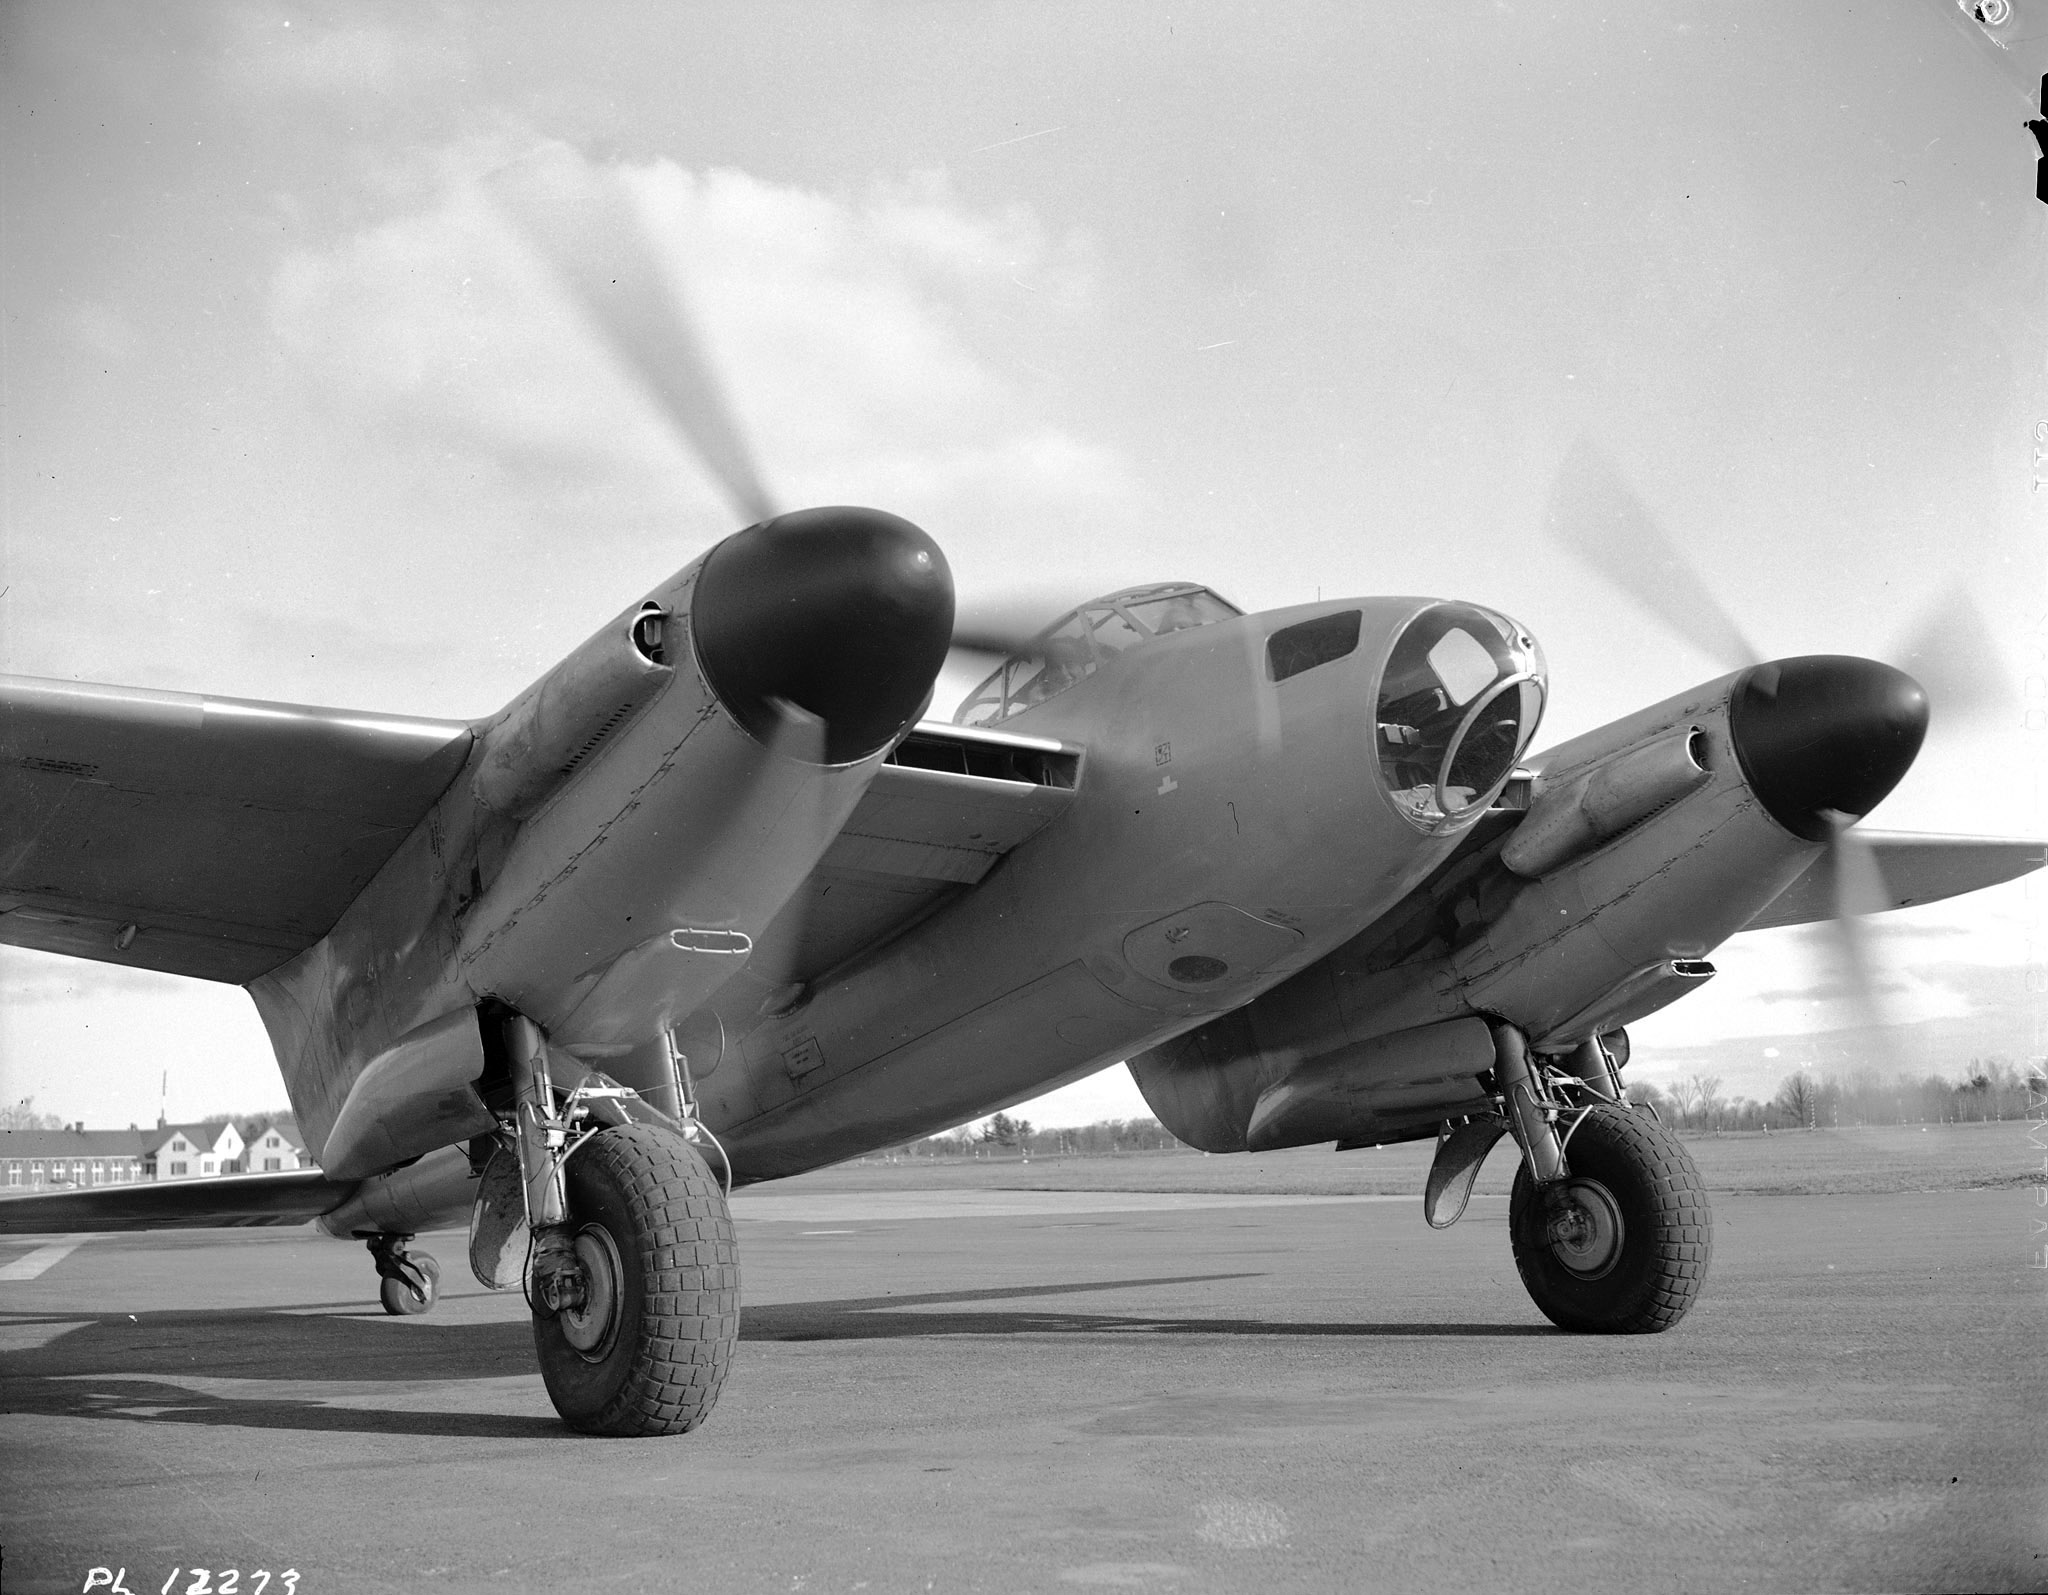 A Mosquito photographed at No. 2 Service Flying Training School in Uplands (near Ottawa), Ontario, on November 21, 1942. PHOTO: DND Archives, PL-12273